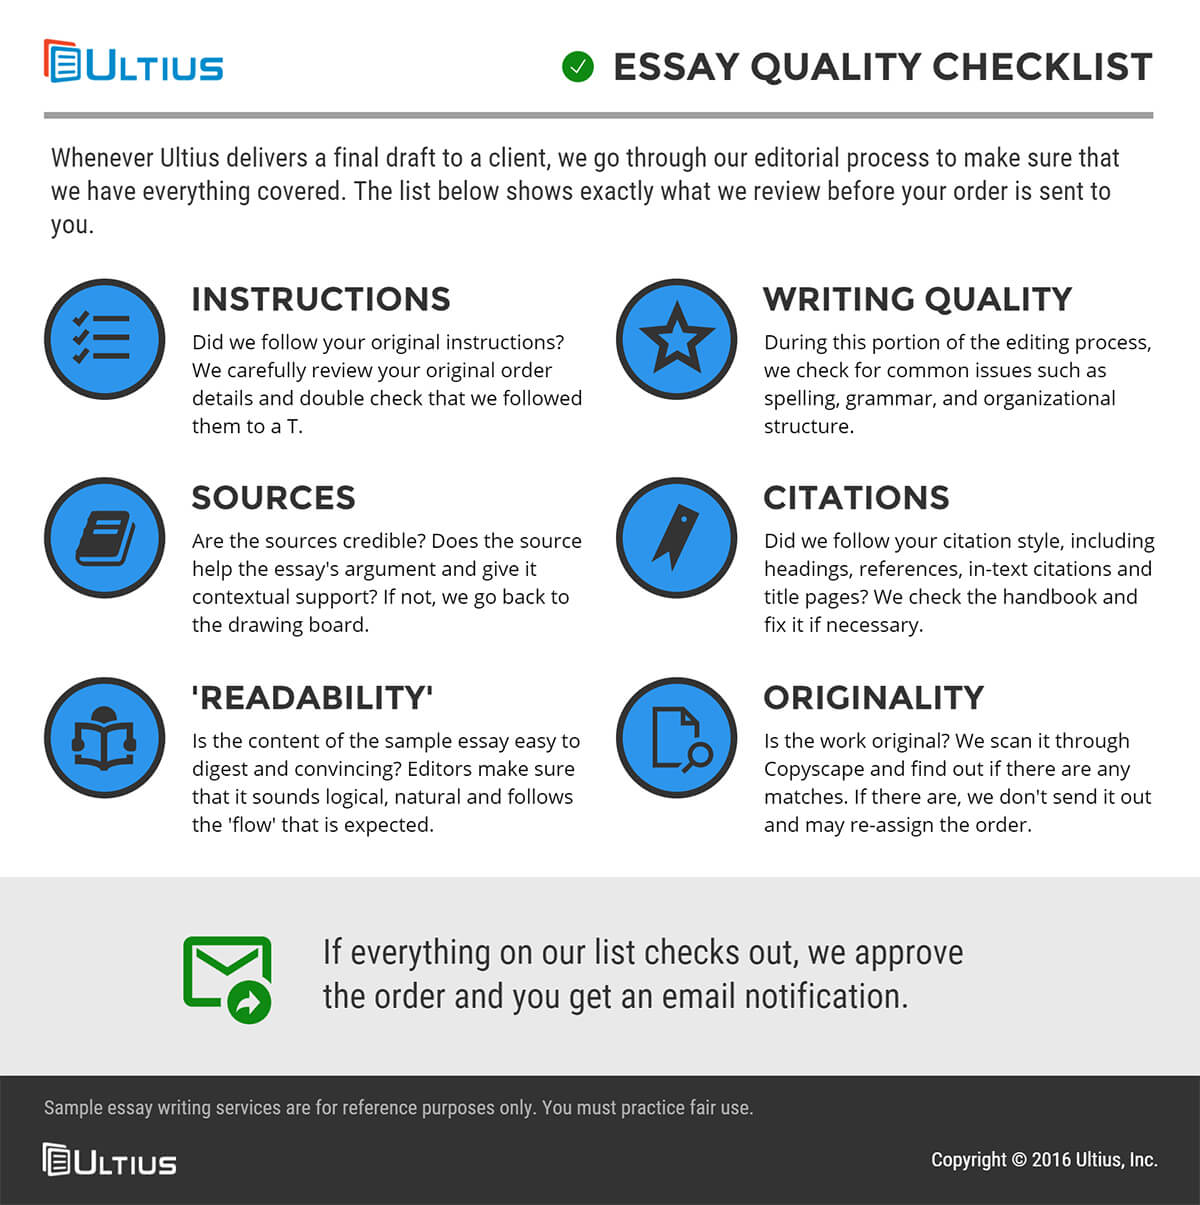 buying essays buy essay online help and buy professionals essays buy essay online original american writers ultiuspurchased essay quality checklist purchased essay quality checklist